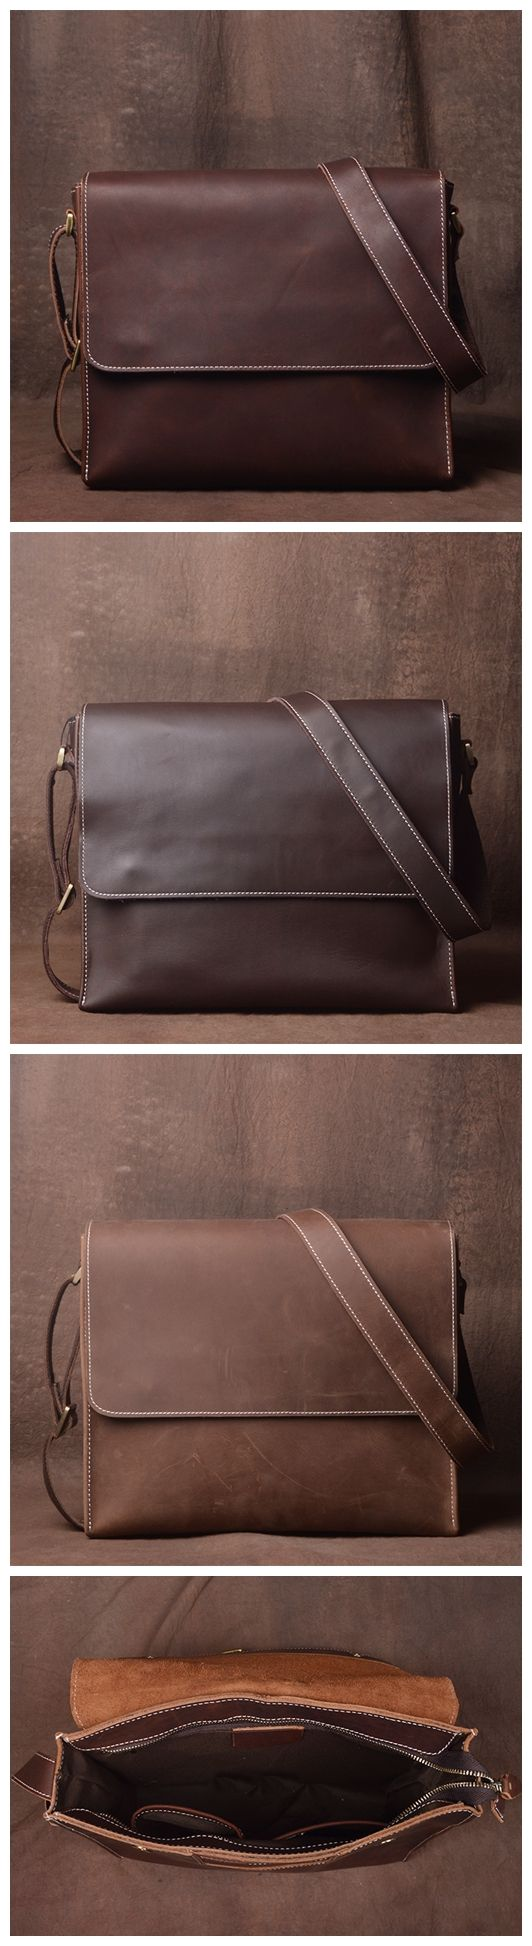 Side Bag, Leather Messenger Bag for Men, iPad Bag JZ008